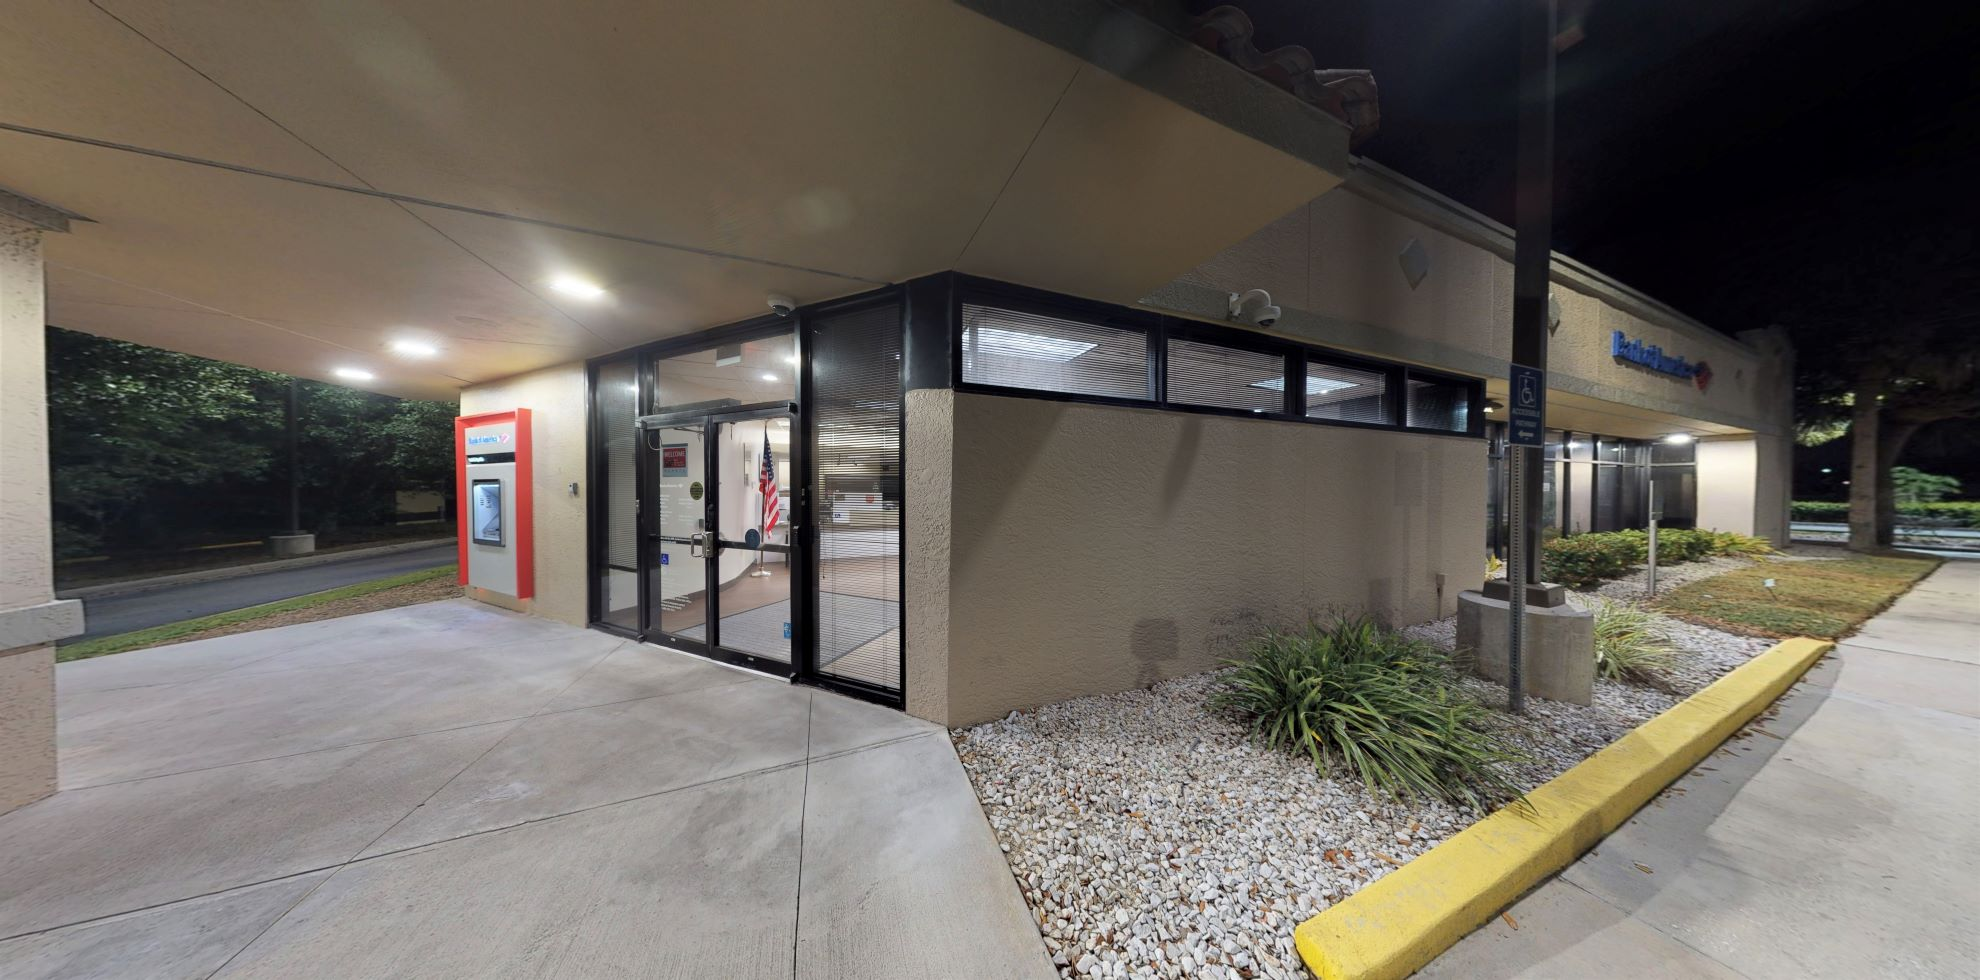 Bank of America financial center with drive-thru ATM and teller | 13650 Six Mile Cypress Pkwy, Fort Myers, FL 33912